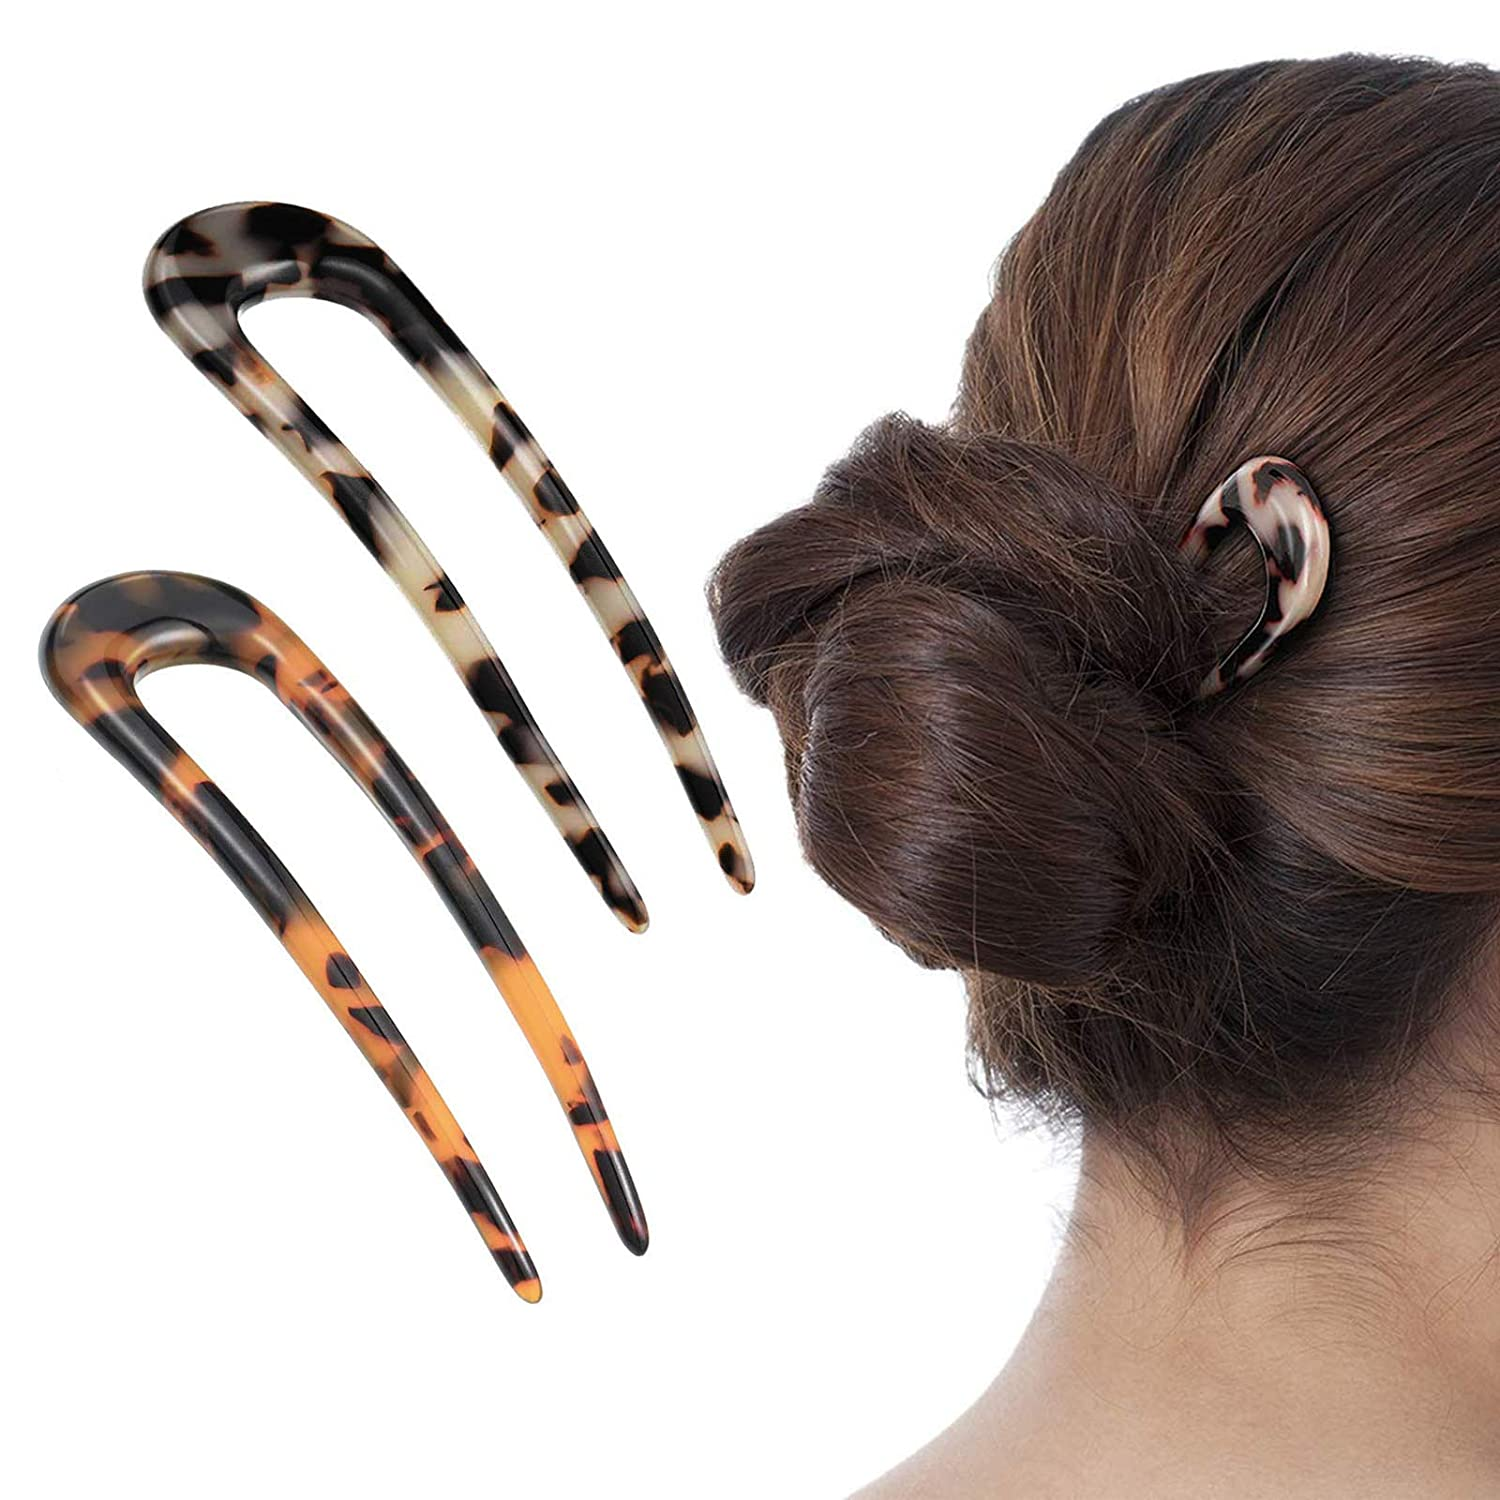 [2 Pack] Benefree French Style Cellulose Acetate Tortoise Shell U Shaped Hair Pin Fork 2 Prong Updo Chignon Pin for Women Girls Hairstyle Accessories(Tortoiseshell and White Tortoiseshell) : Beauty